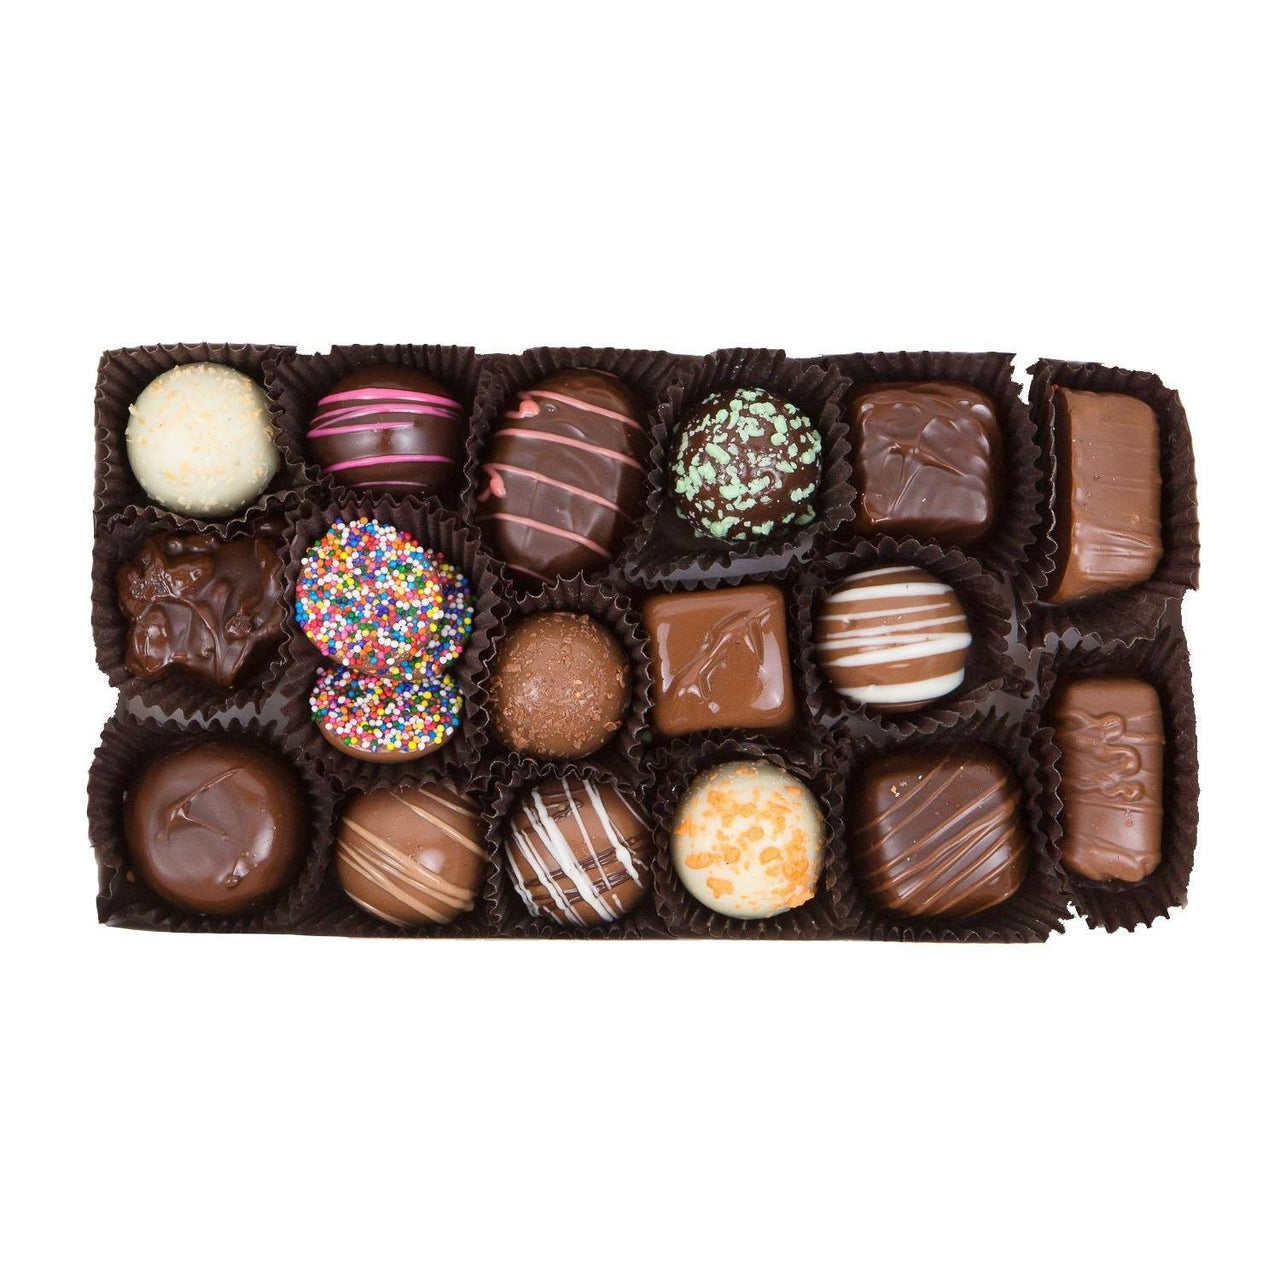 Stocking Stuffers for Wife Ideas - Chocolate Assortment Gift Box - Jackie's Chocolate (4336369696883)